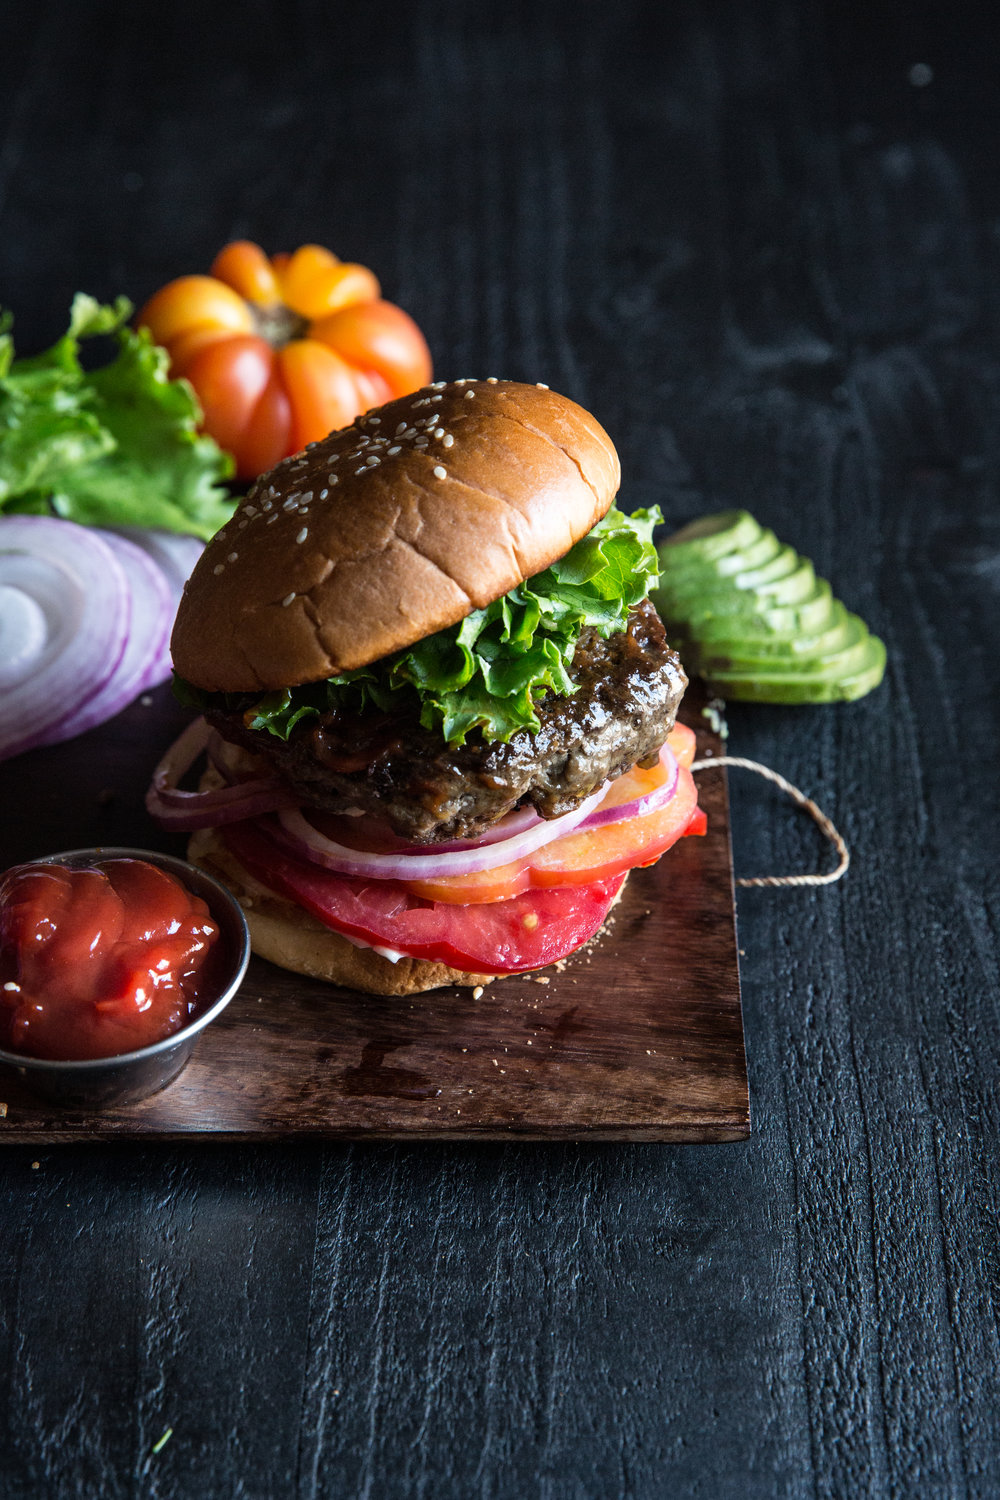 James Beard Hamburger, Food Stylist Judy Kim